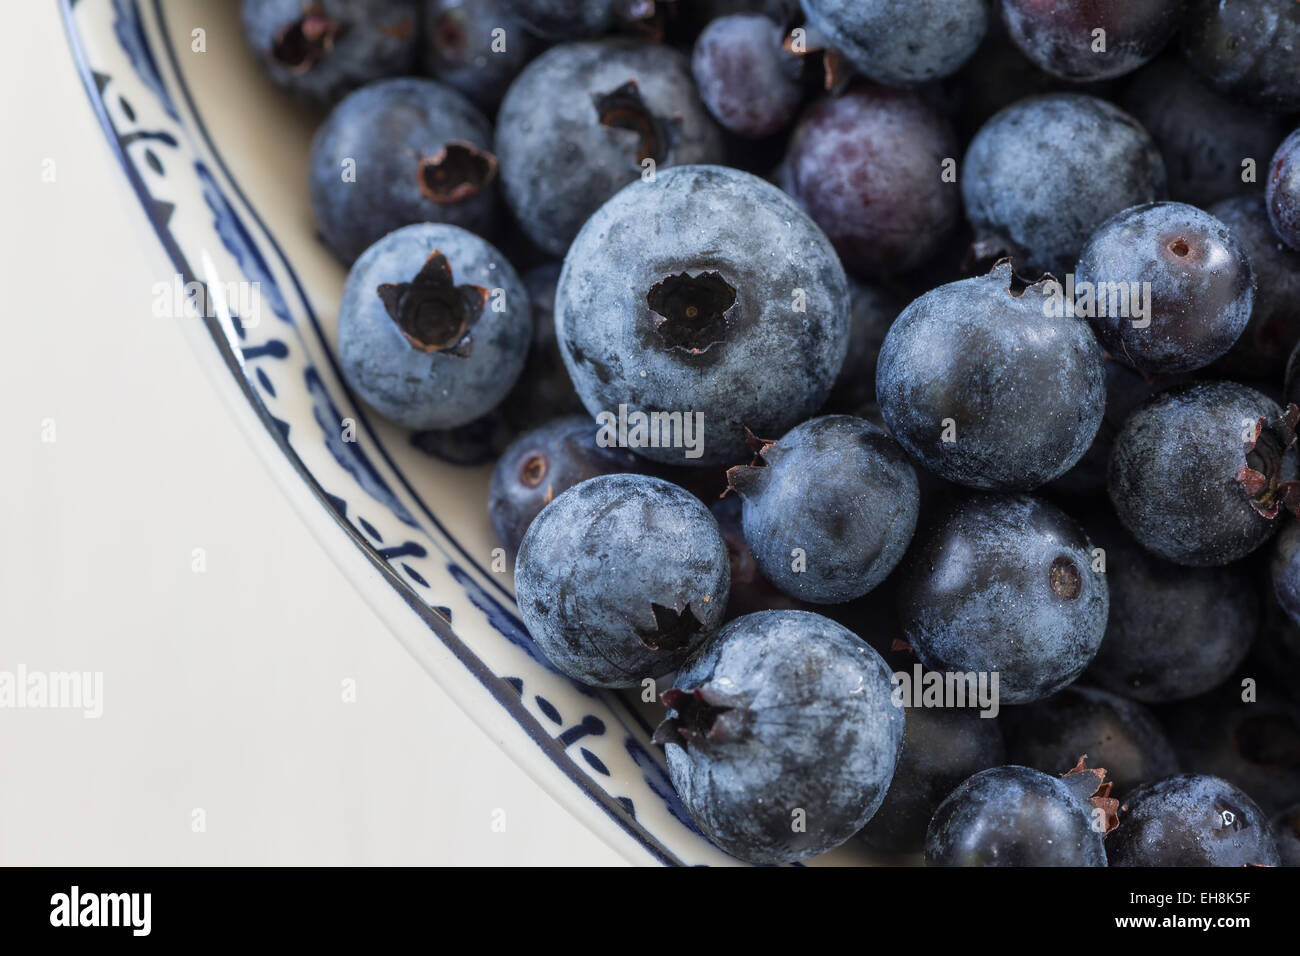 Freshly picked North American wild low bush blueberries in a china bowl. - Stock Image